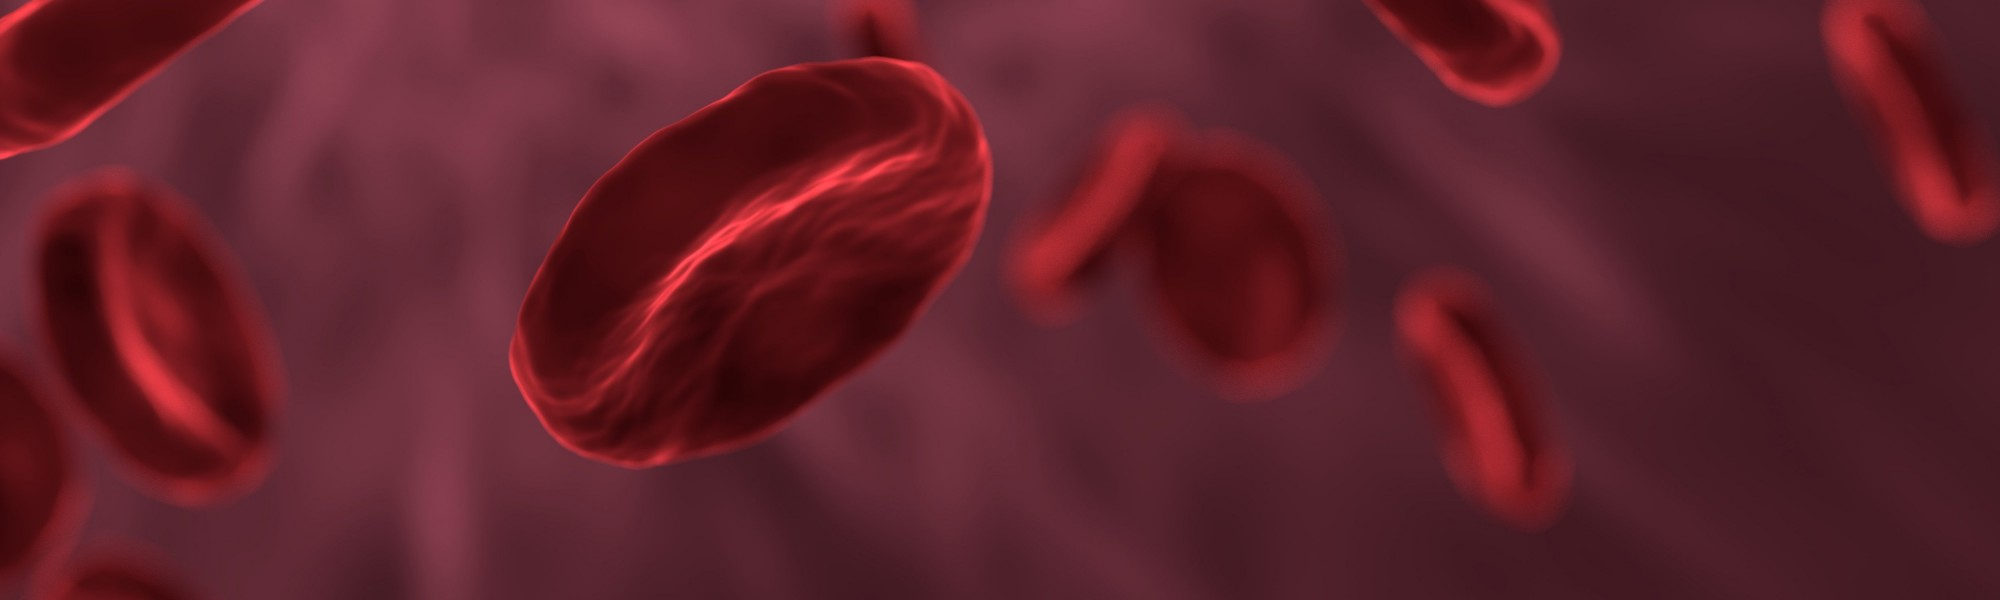 Computer generated image of red blood cells